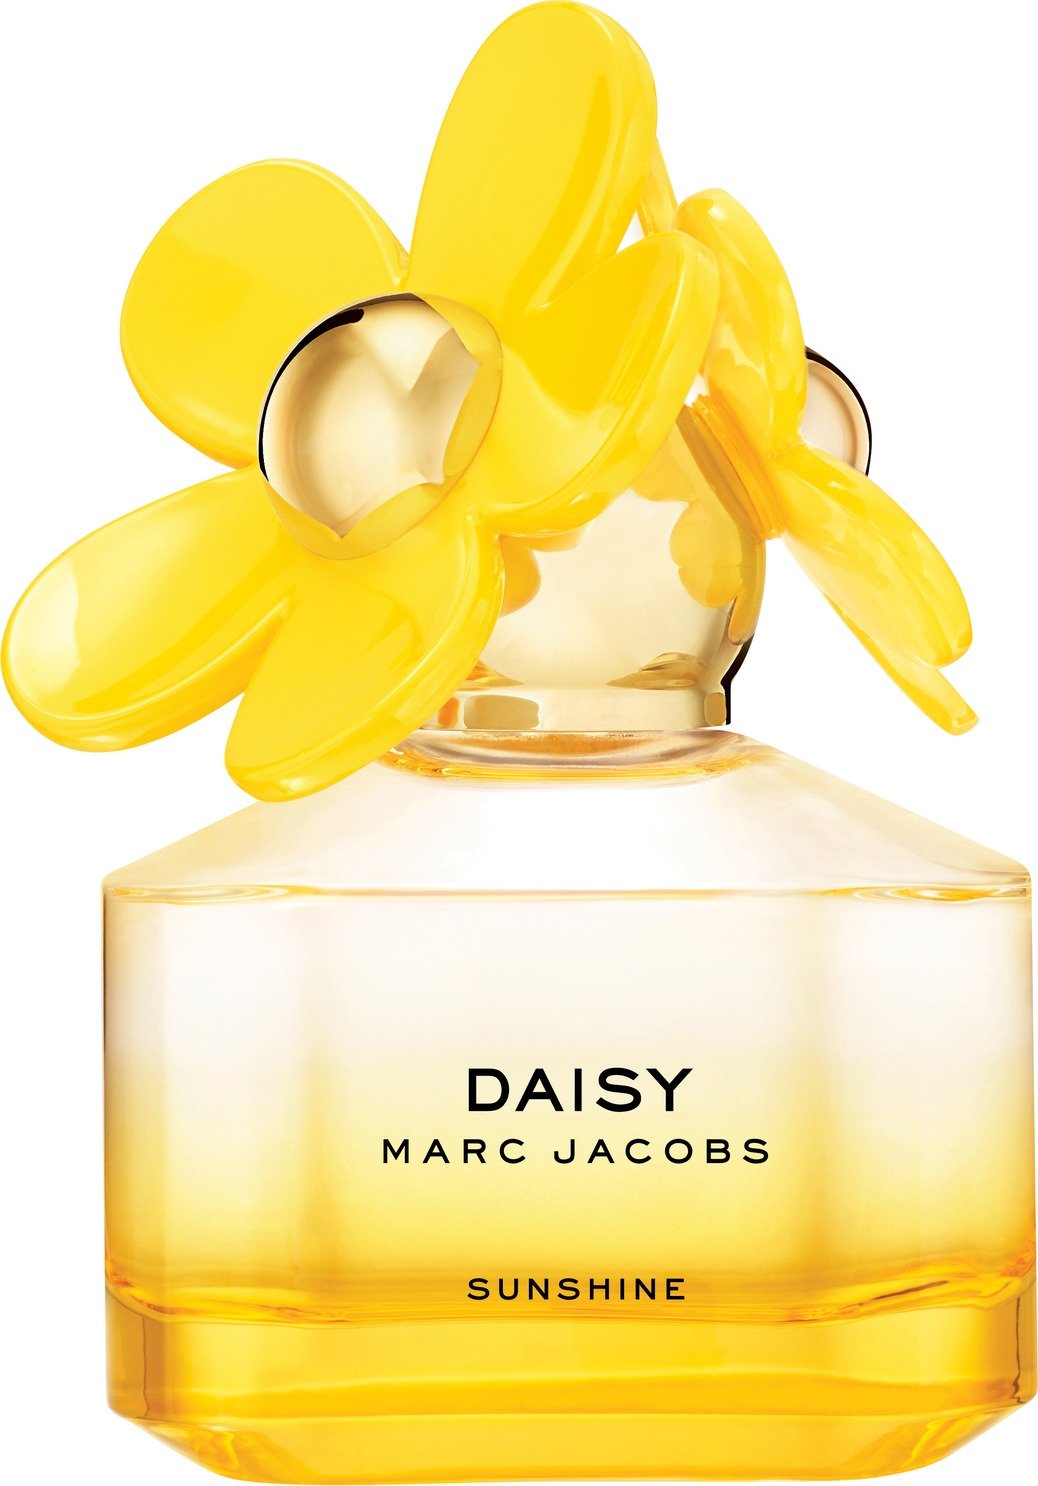 цена Marc Jacobs Daisy Sunshine 50 мл онлайн в 2017 году